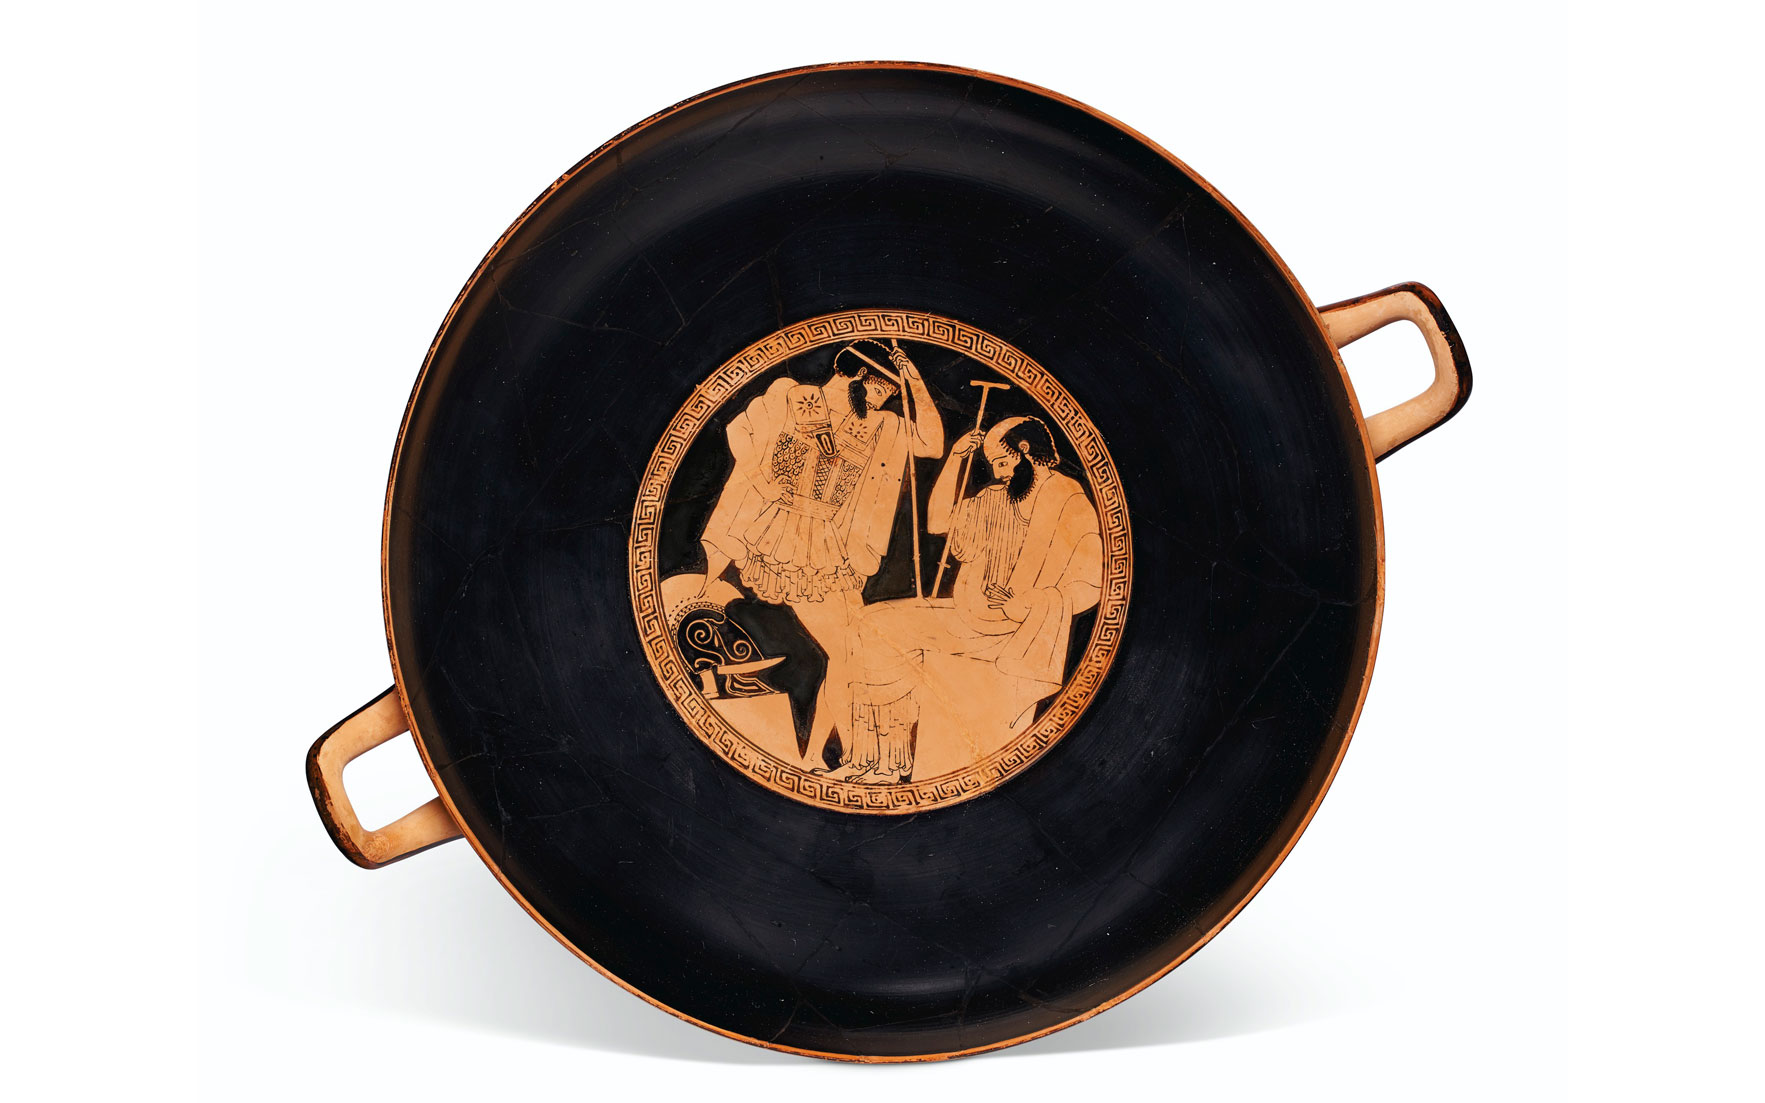 An Attic red-figured kylix, attributed to Makron as painter, signed by Hieron as potter, c. 490-480 BC. 13⅜ in (34 cm) diameter. Estimate $1,200,000-1,800,000. Offered in Antiquities on 13